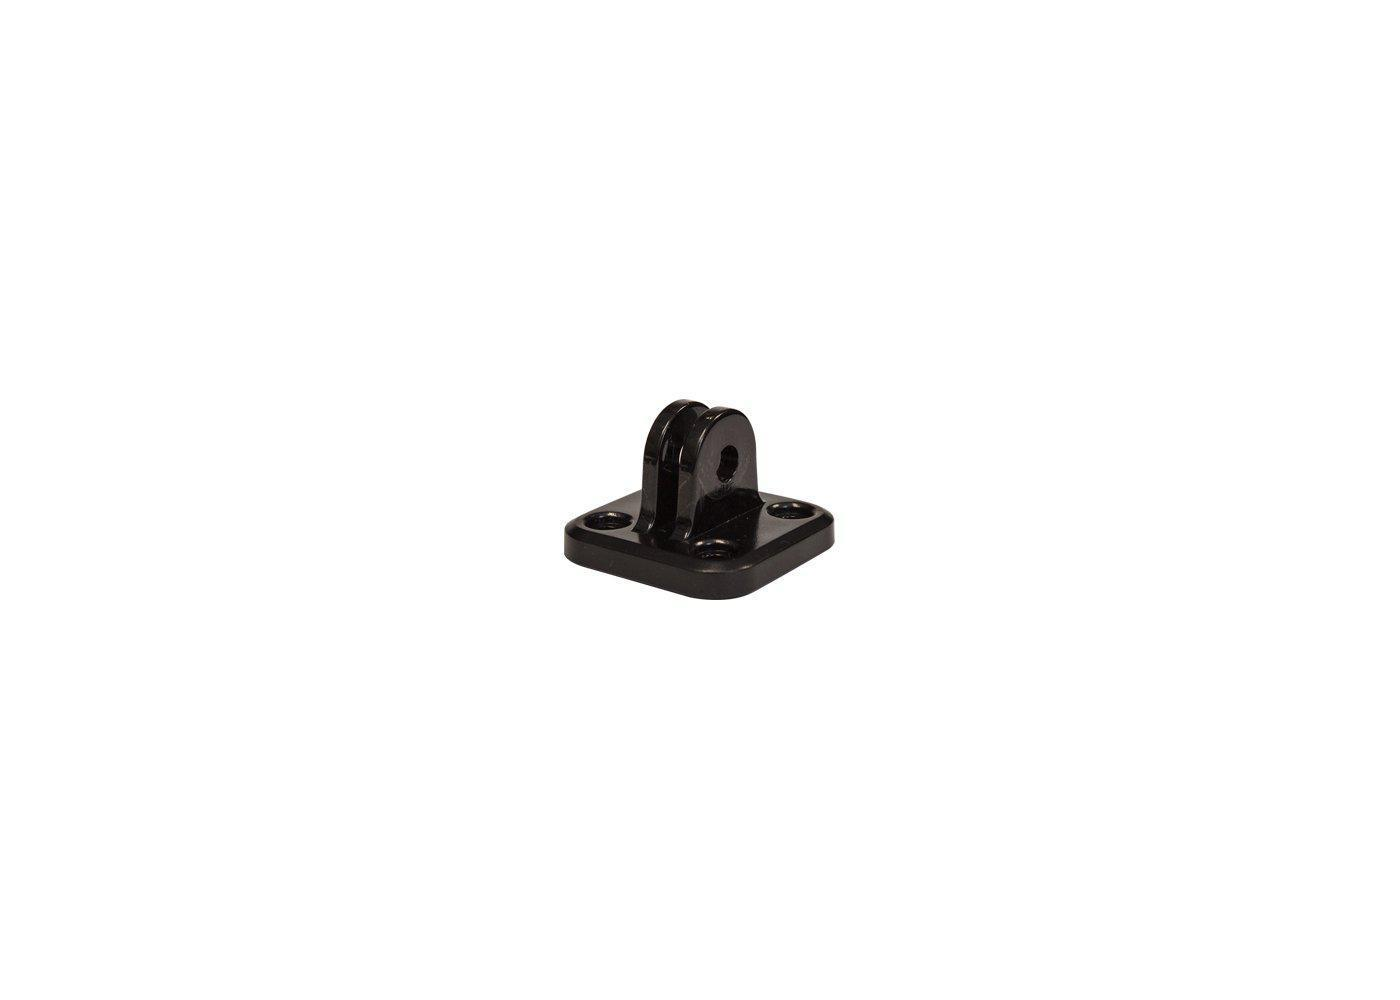 Plastic Case Connector - cobra.com